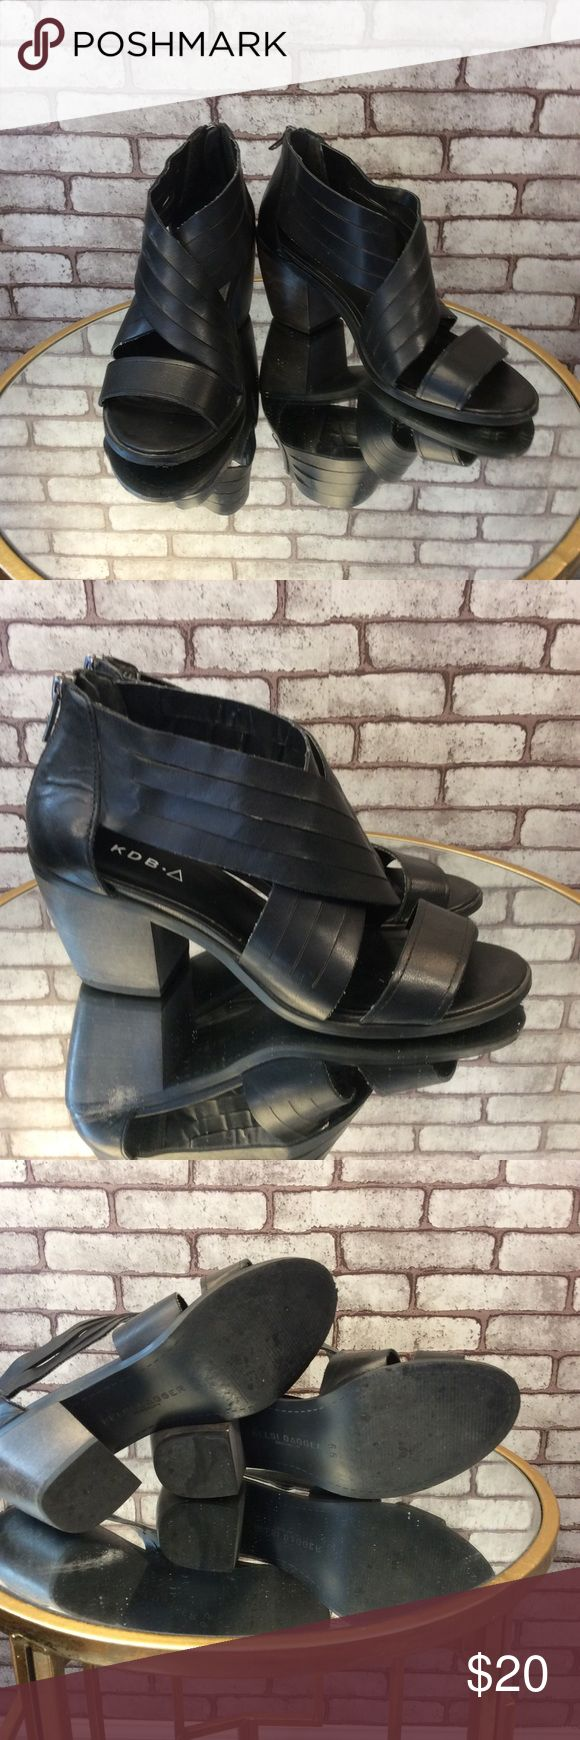 Kelsi dagger shoes Love these shoes !! They have a cool modern caged look. Gently used, good condition. Has a zipper in back , wooden heel. ⭐️ no trading or modeling ⭐️ Kelsi Dagger Shoes Sandals